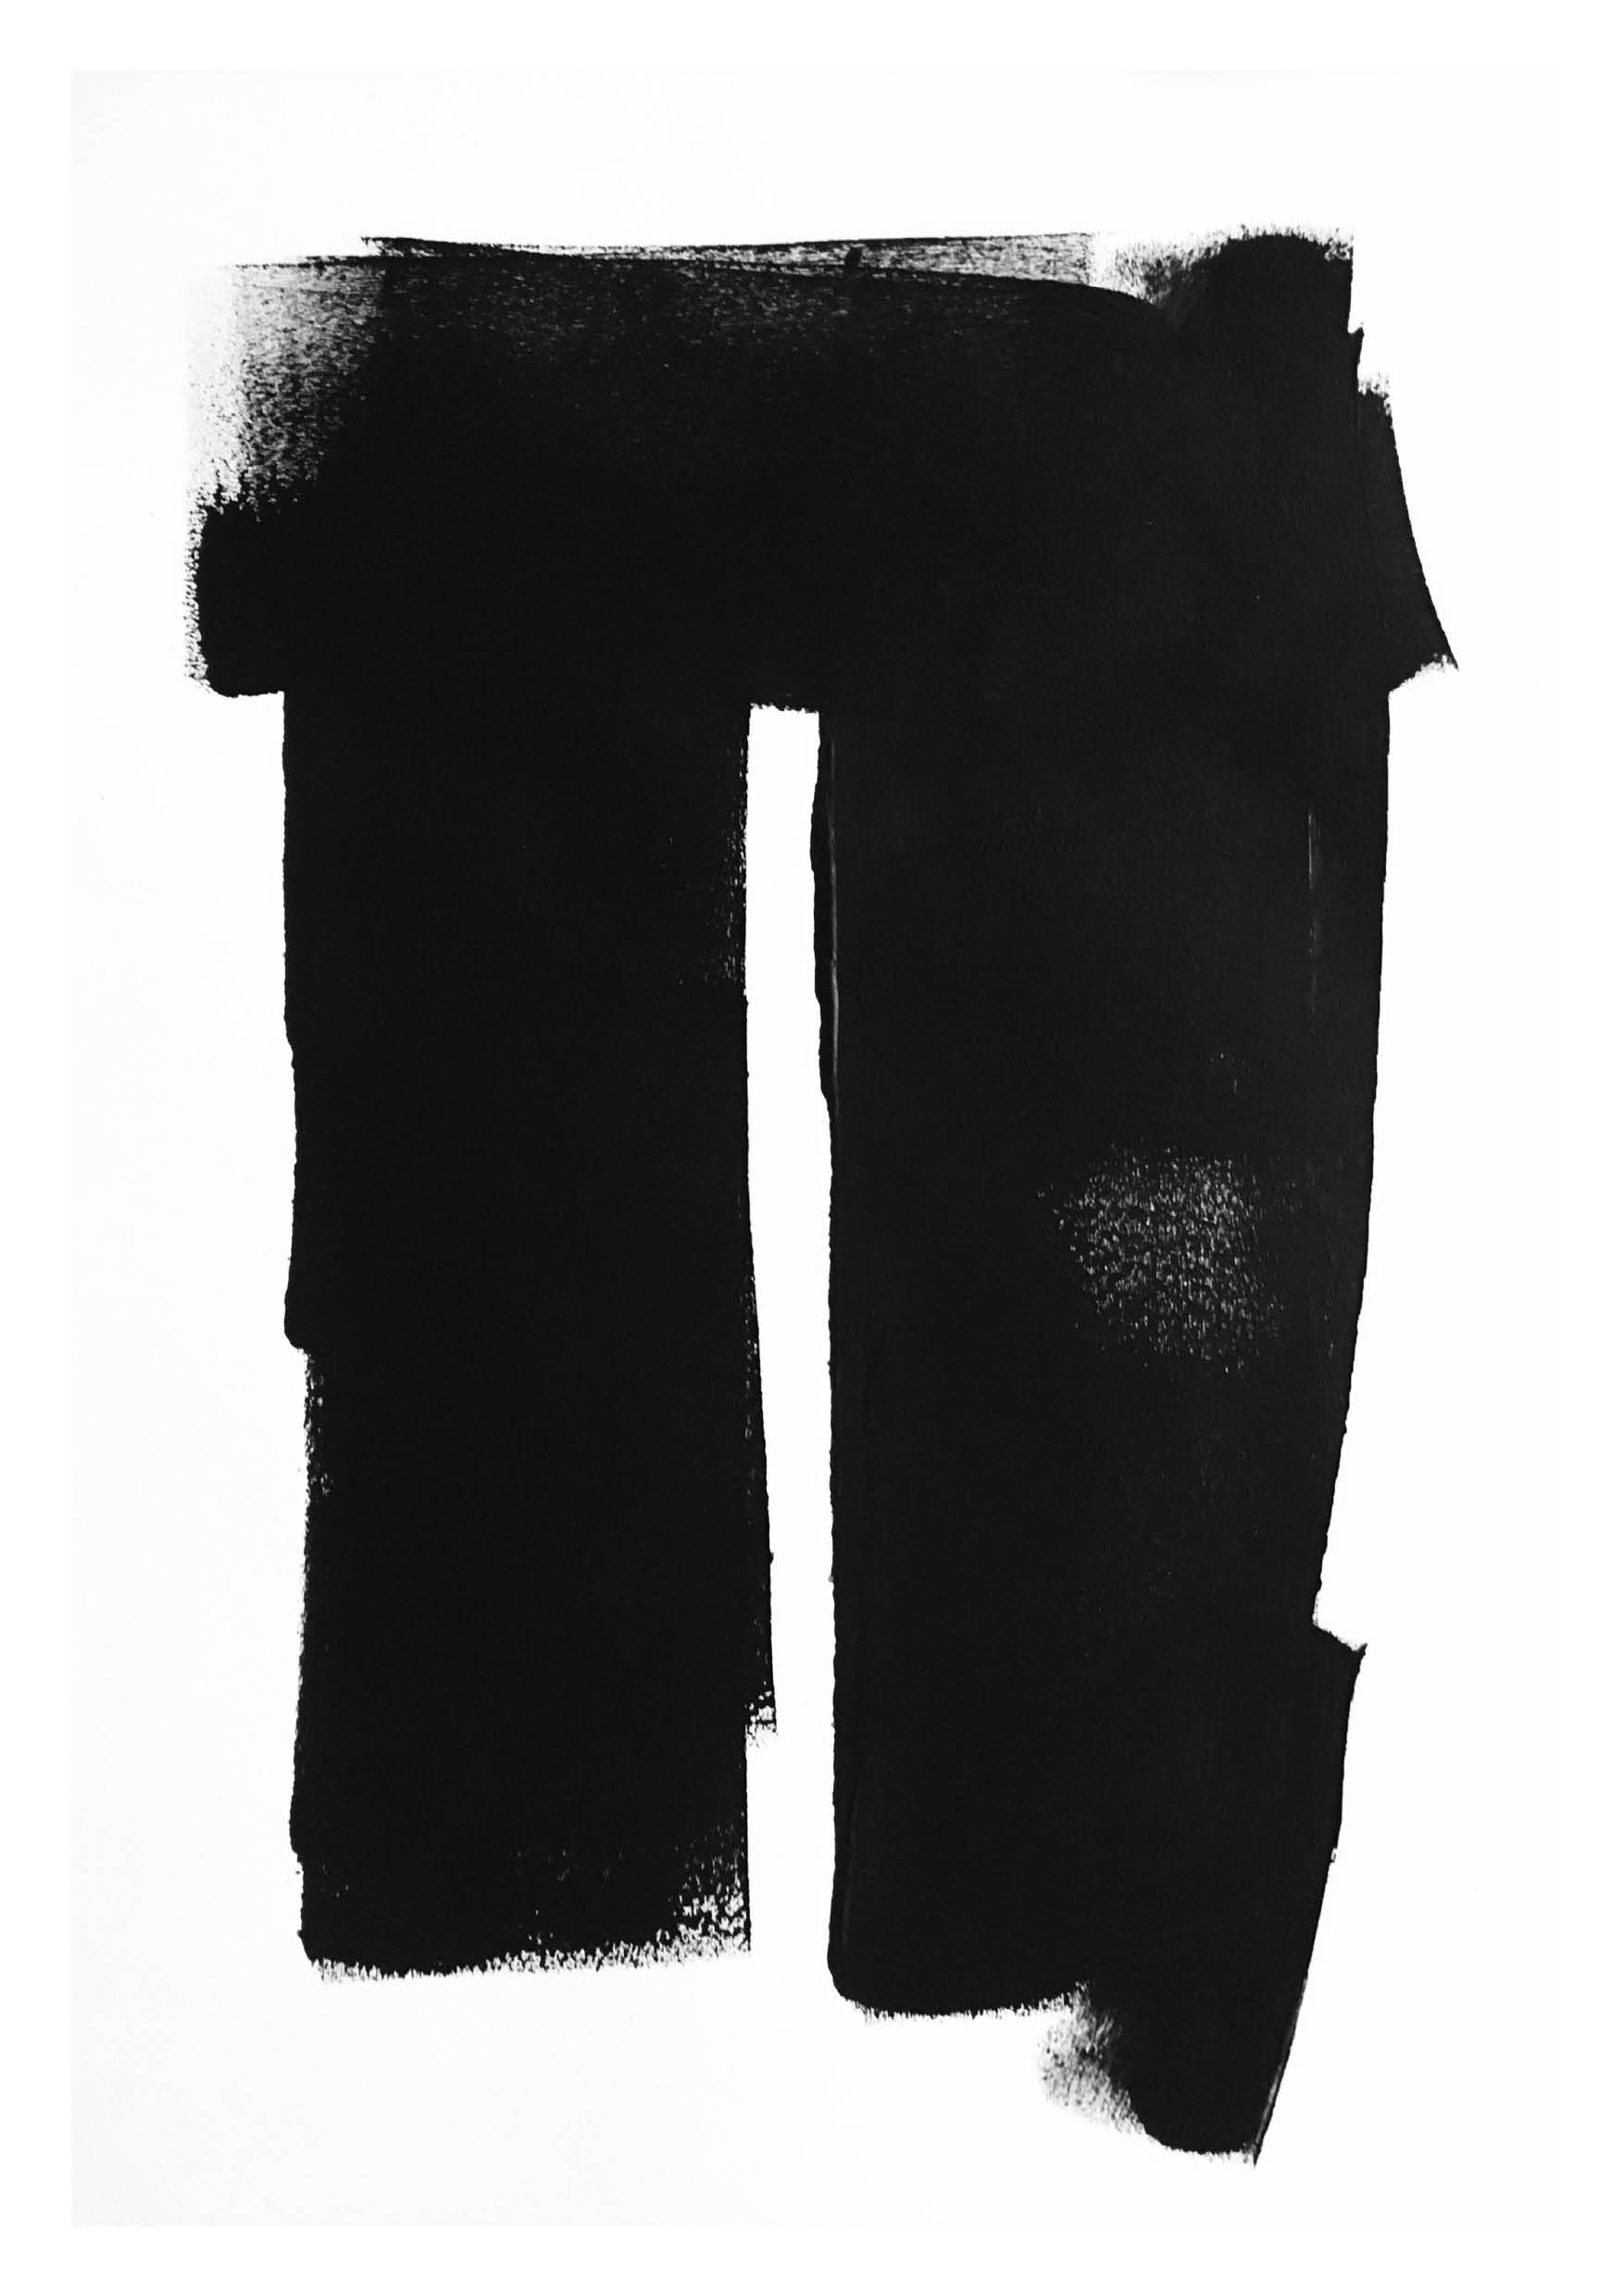 Untitled 4 – Black Acrylic on Paper